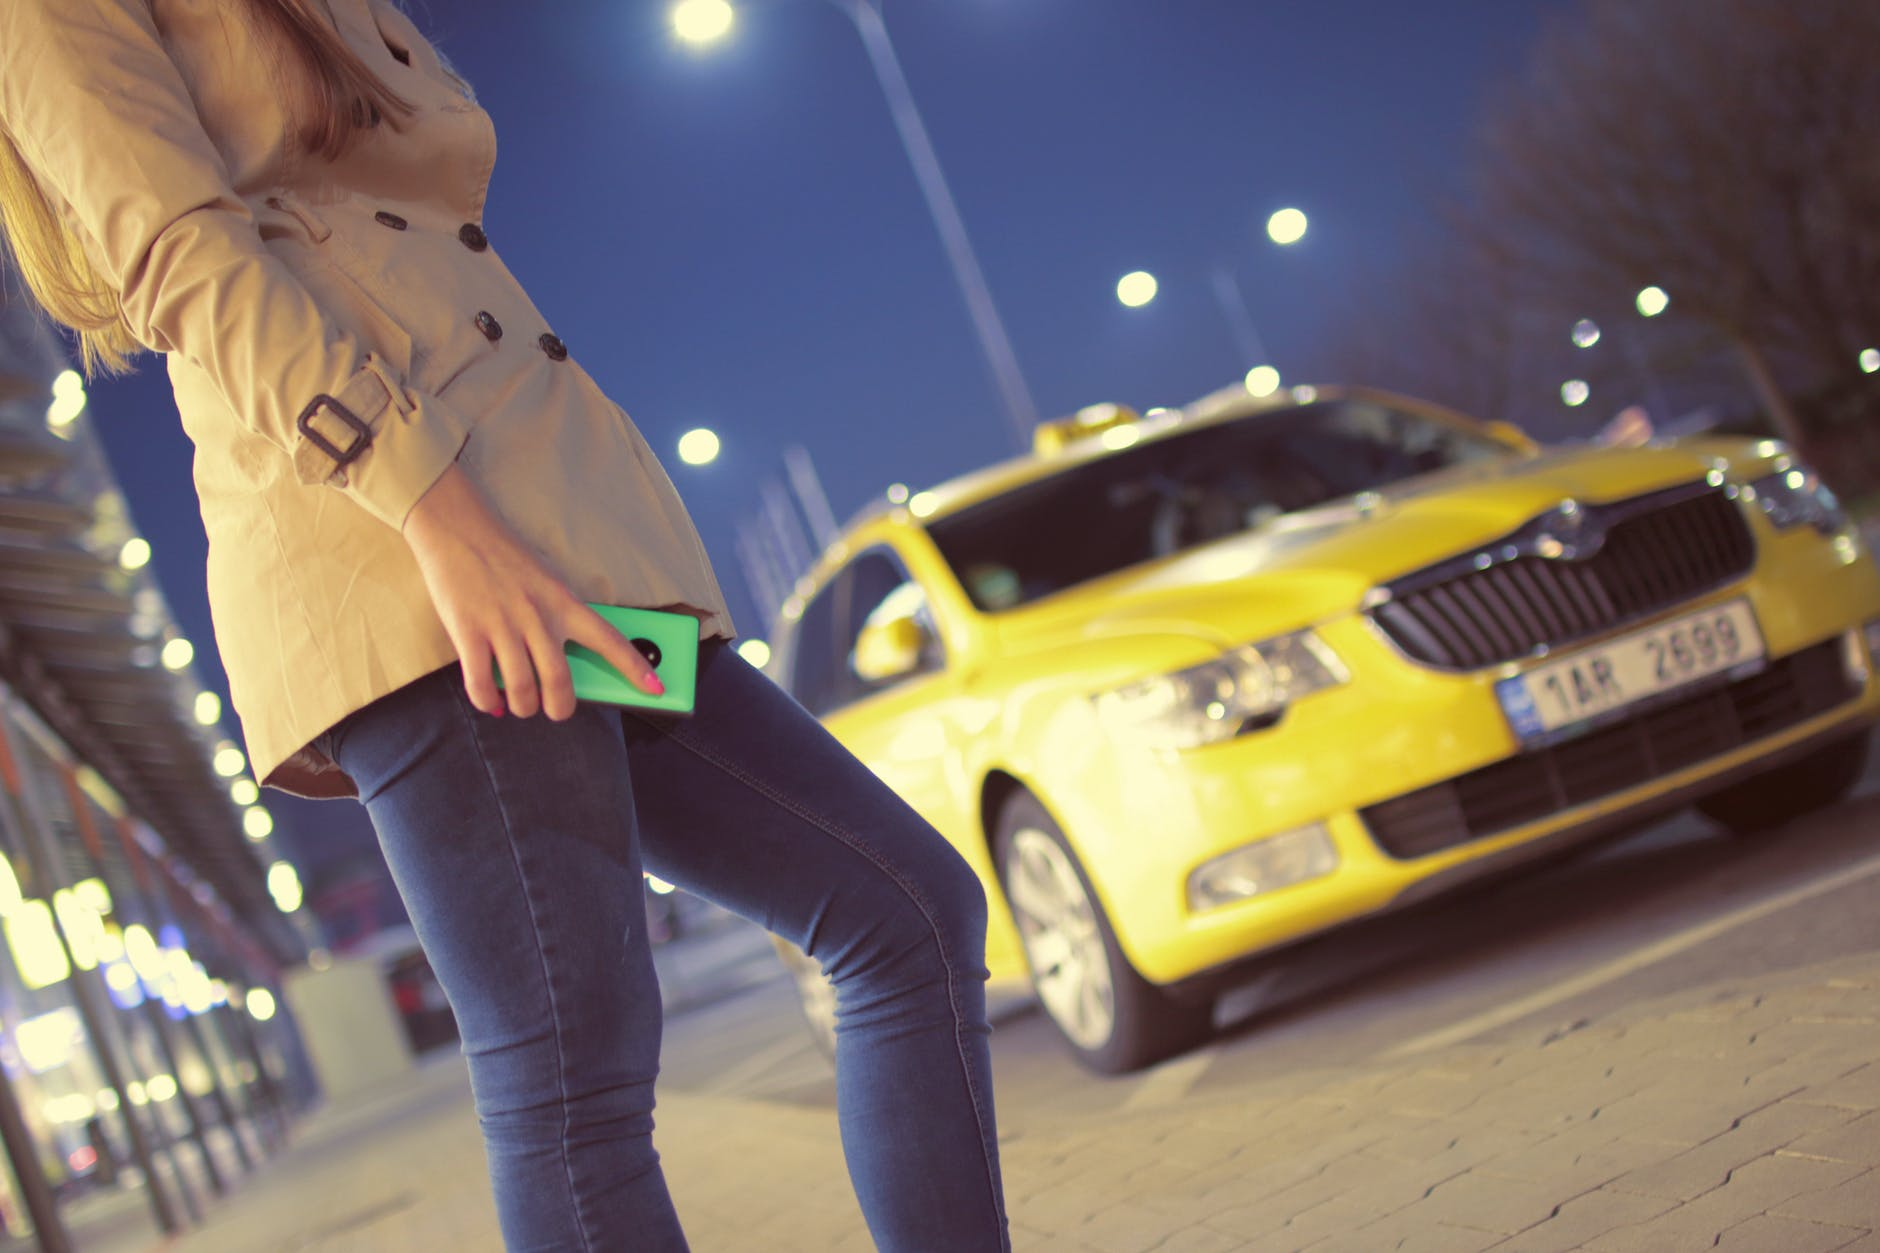 She took a taxi and left.   Source: Pexels